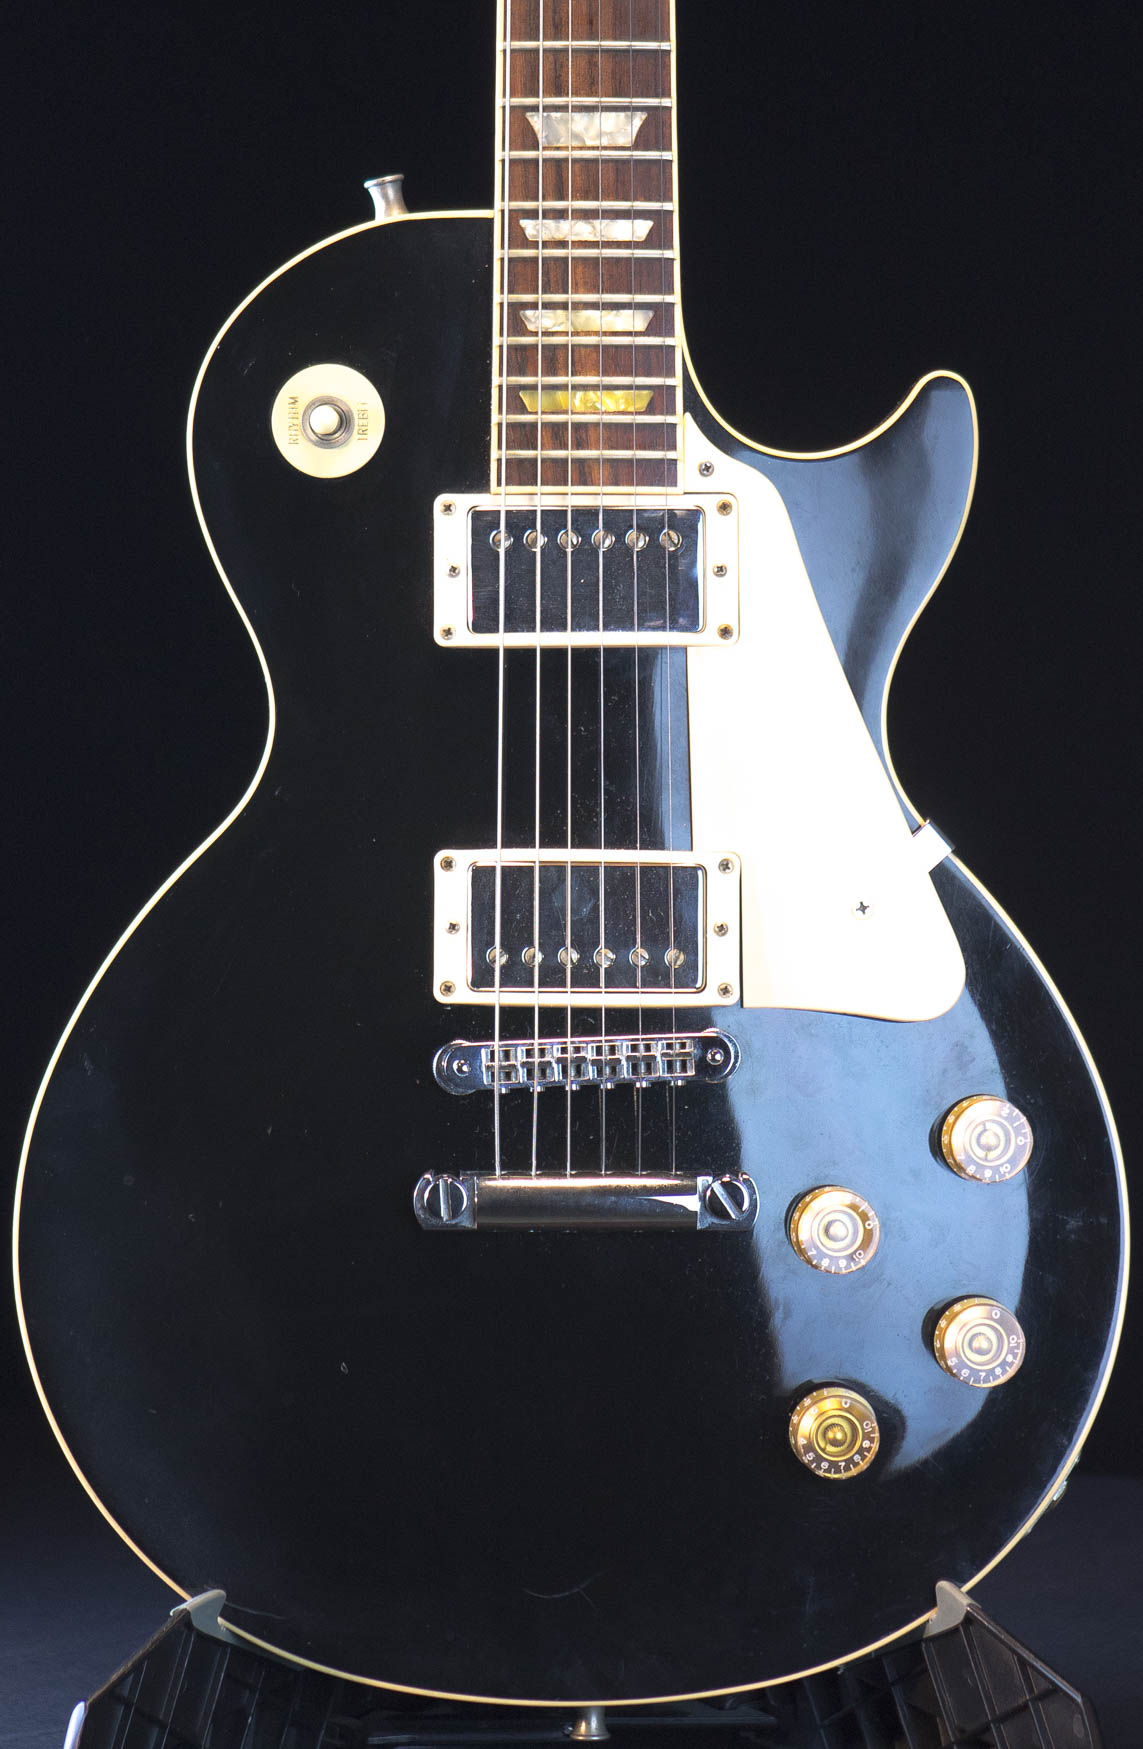 1992 gibson les paul standard ebony finish good wood era guitar grlc1636 ebay. Black Bedroom Furniture Sets. Home Design Ideas